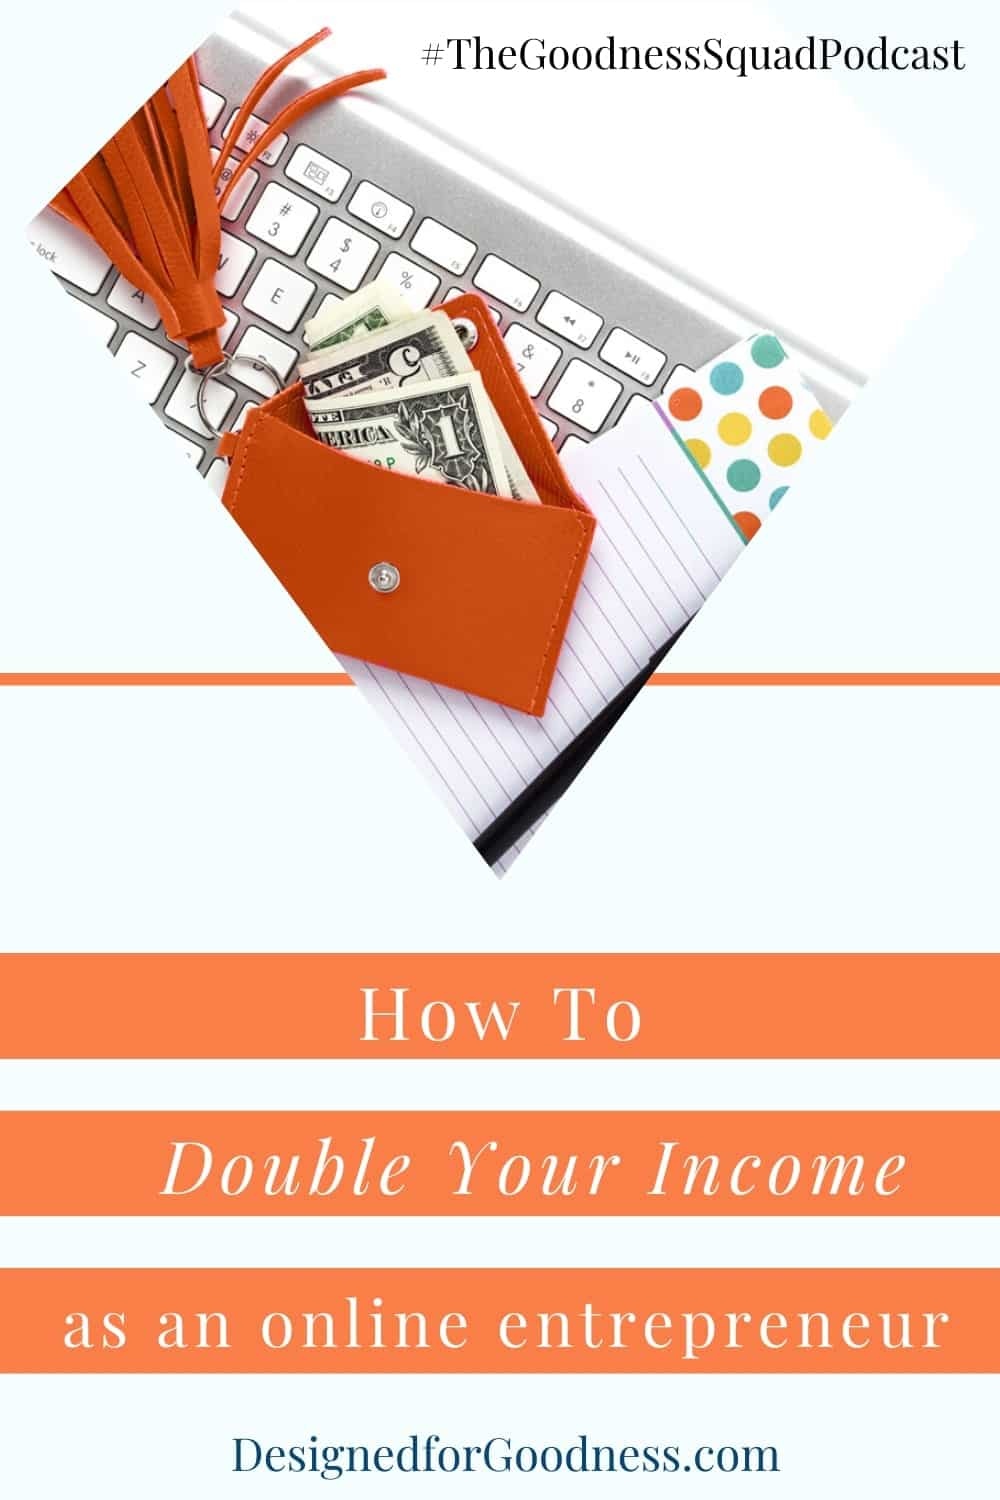 02_Double your income